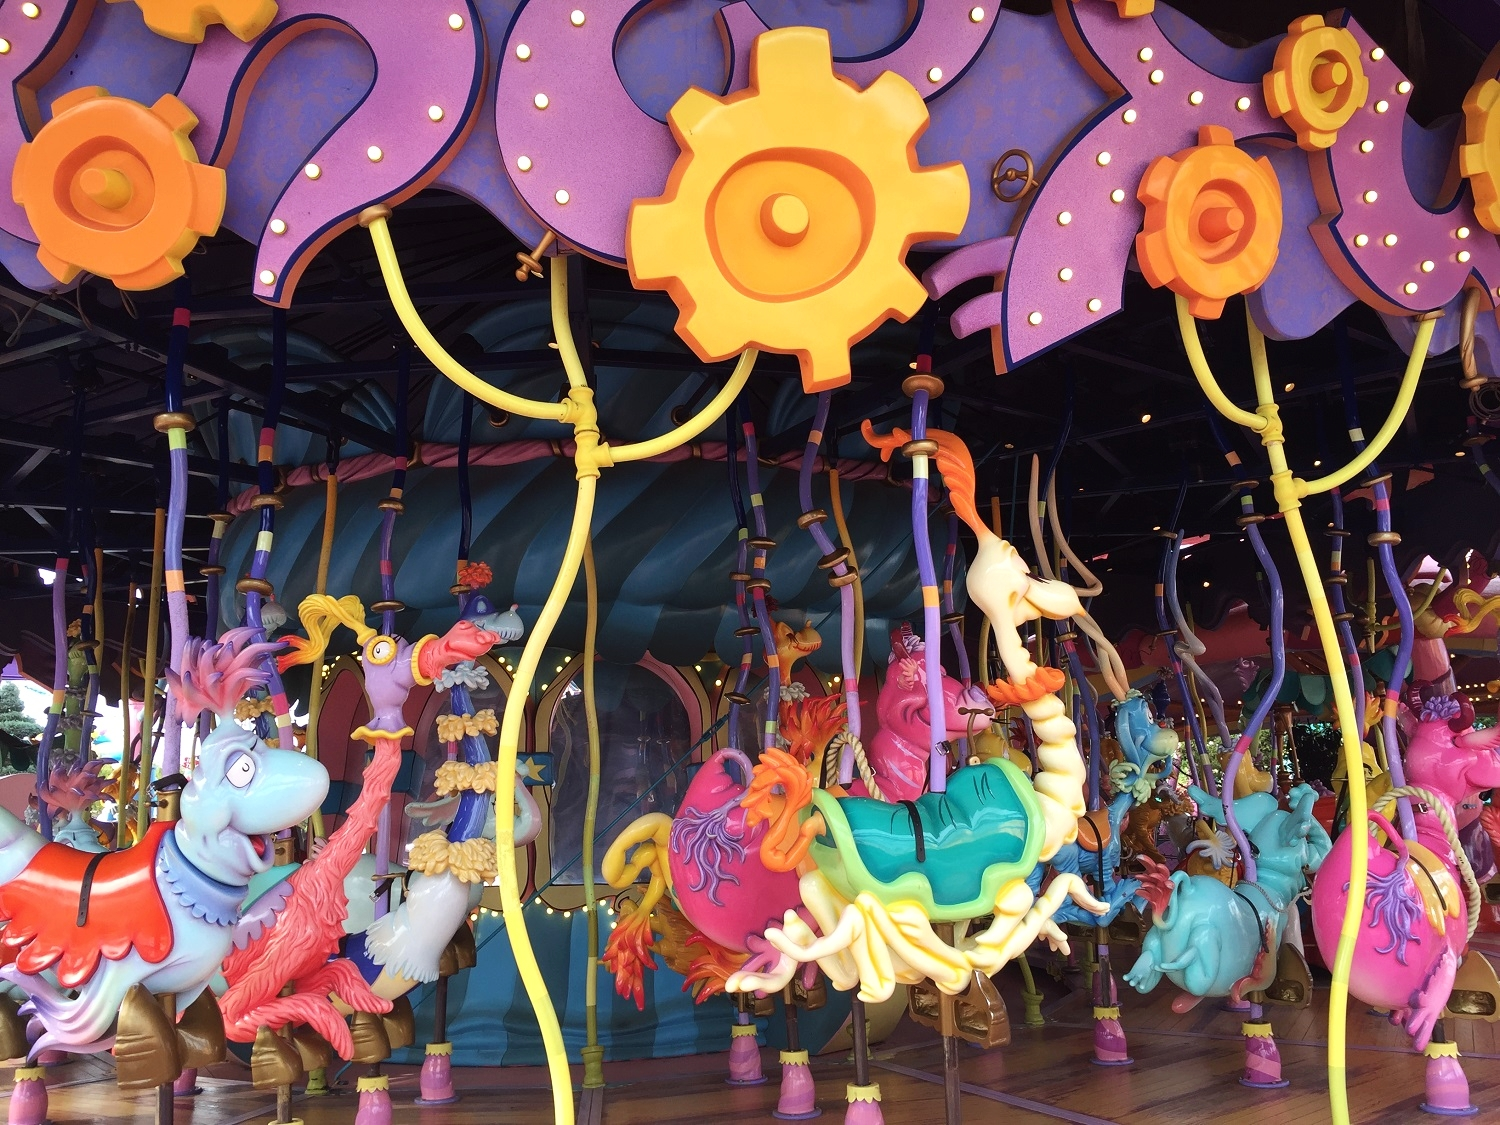 The Caro-Seuss-El at Islands of Adventure does not have minimum height requirements.